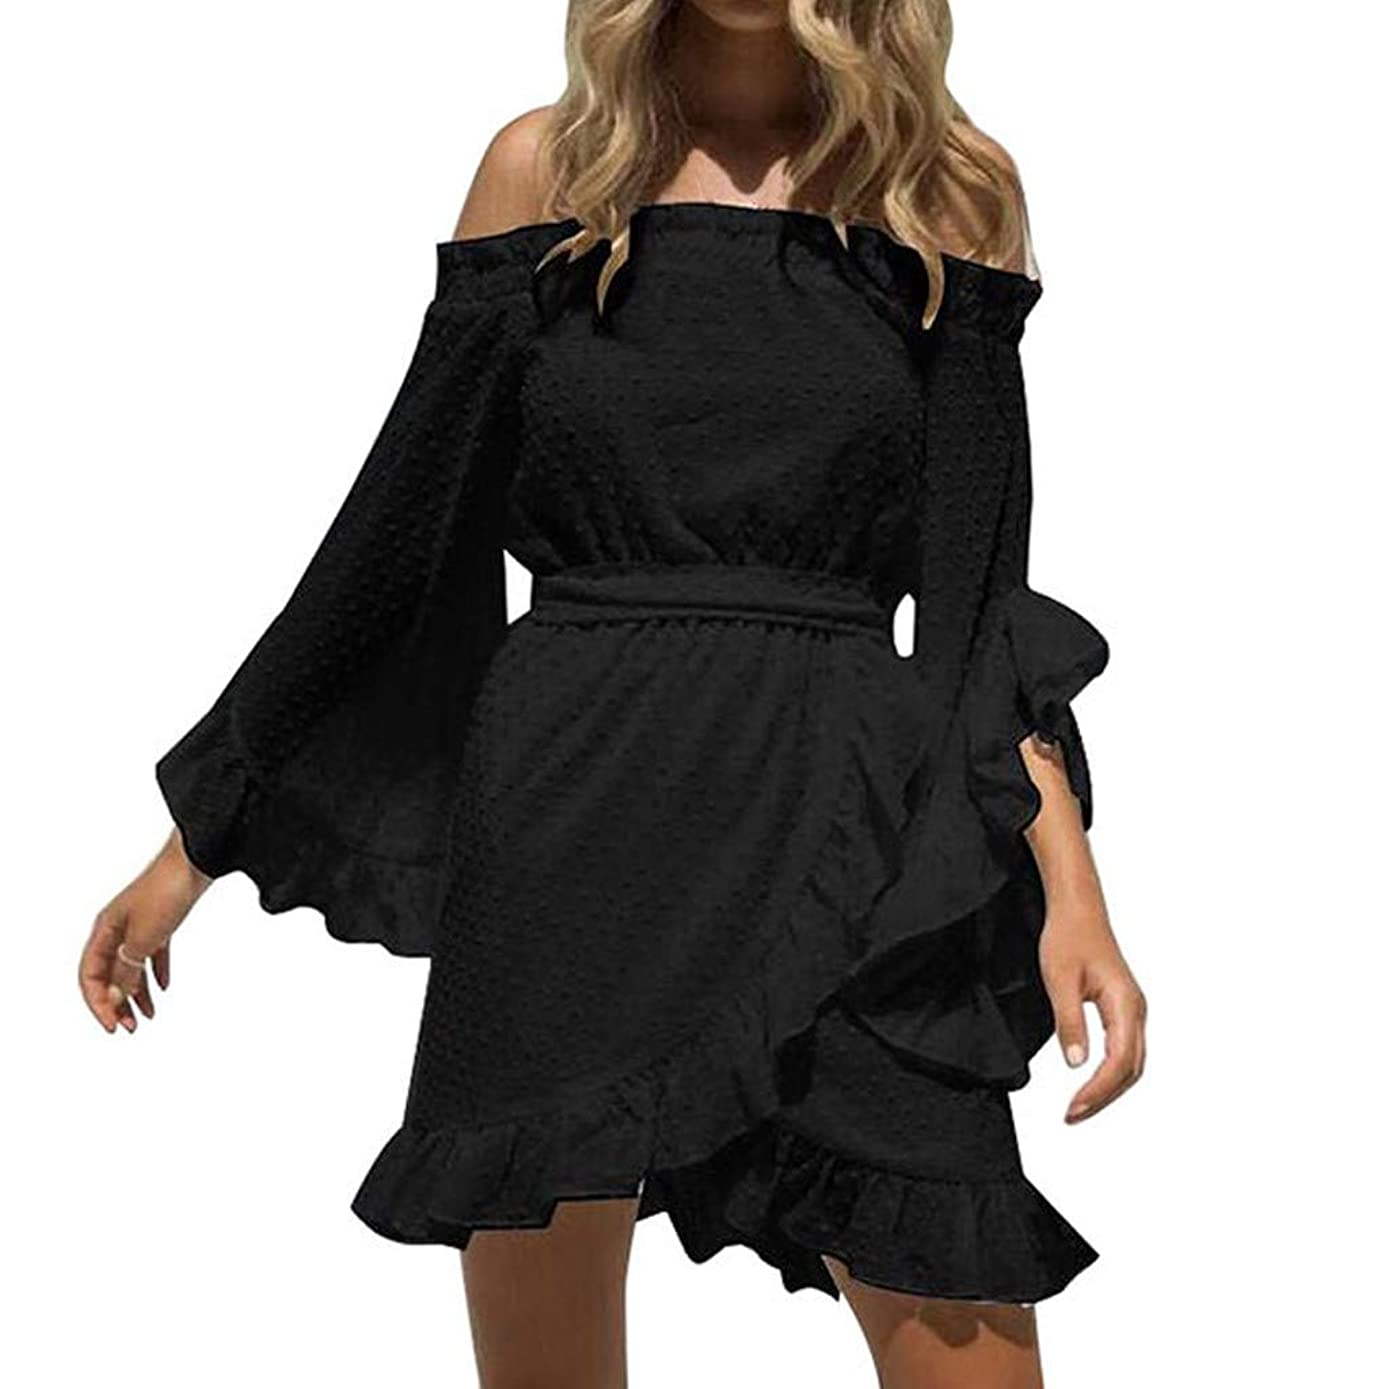 Ximandi Women's Comfy Chiffon Slash Neck Flare Sleeve Ruffle Dot Cut Flower Tunic Dress